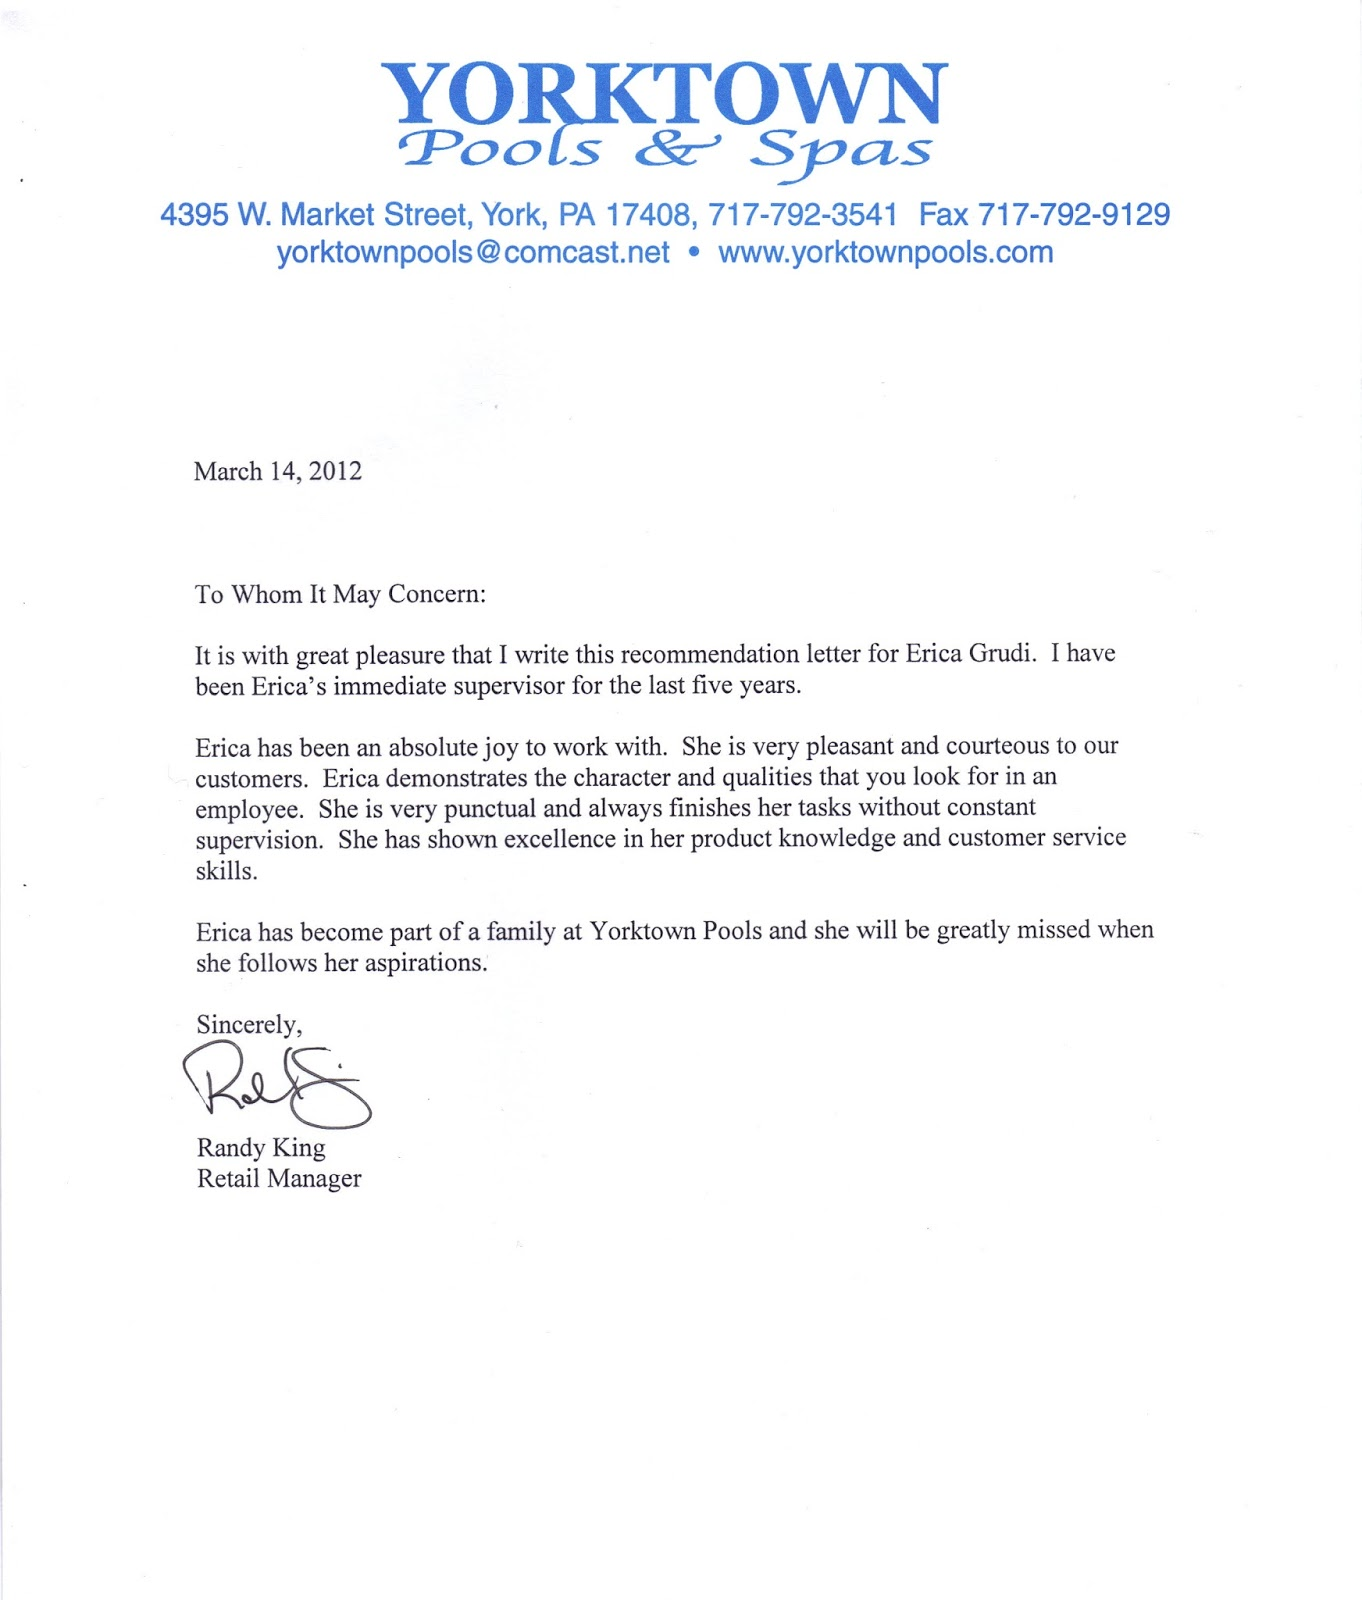 Letter of recommendation sample 3